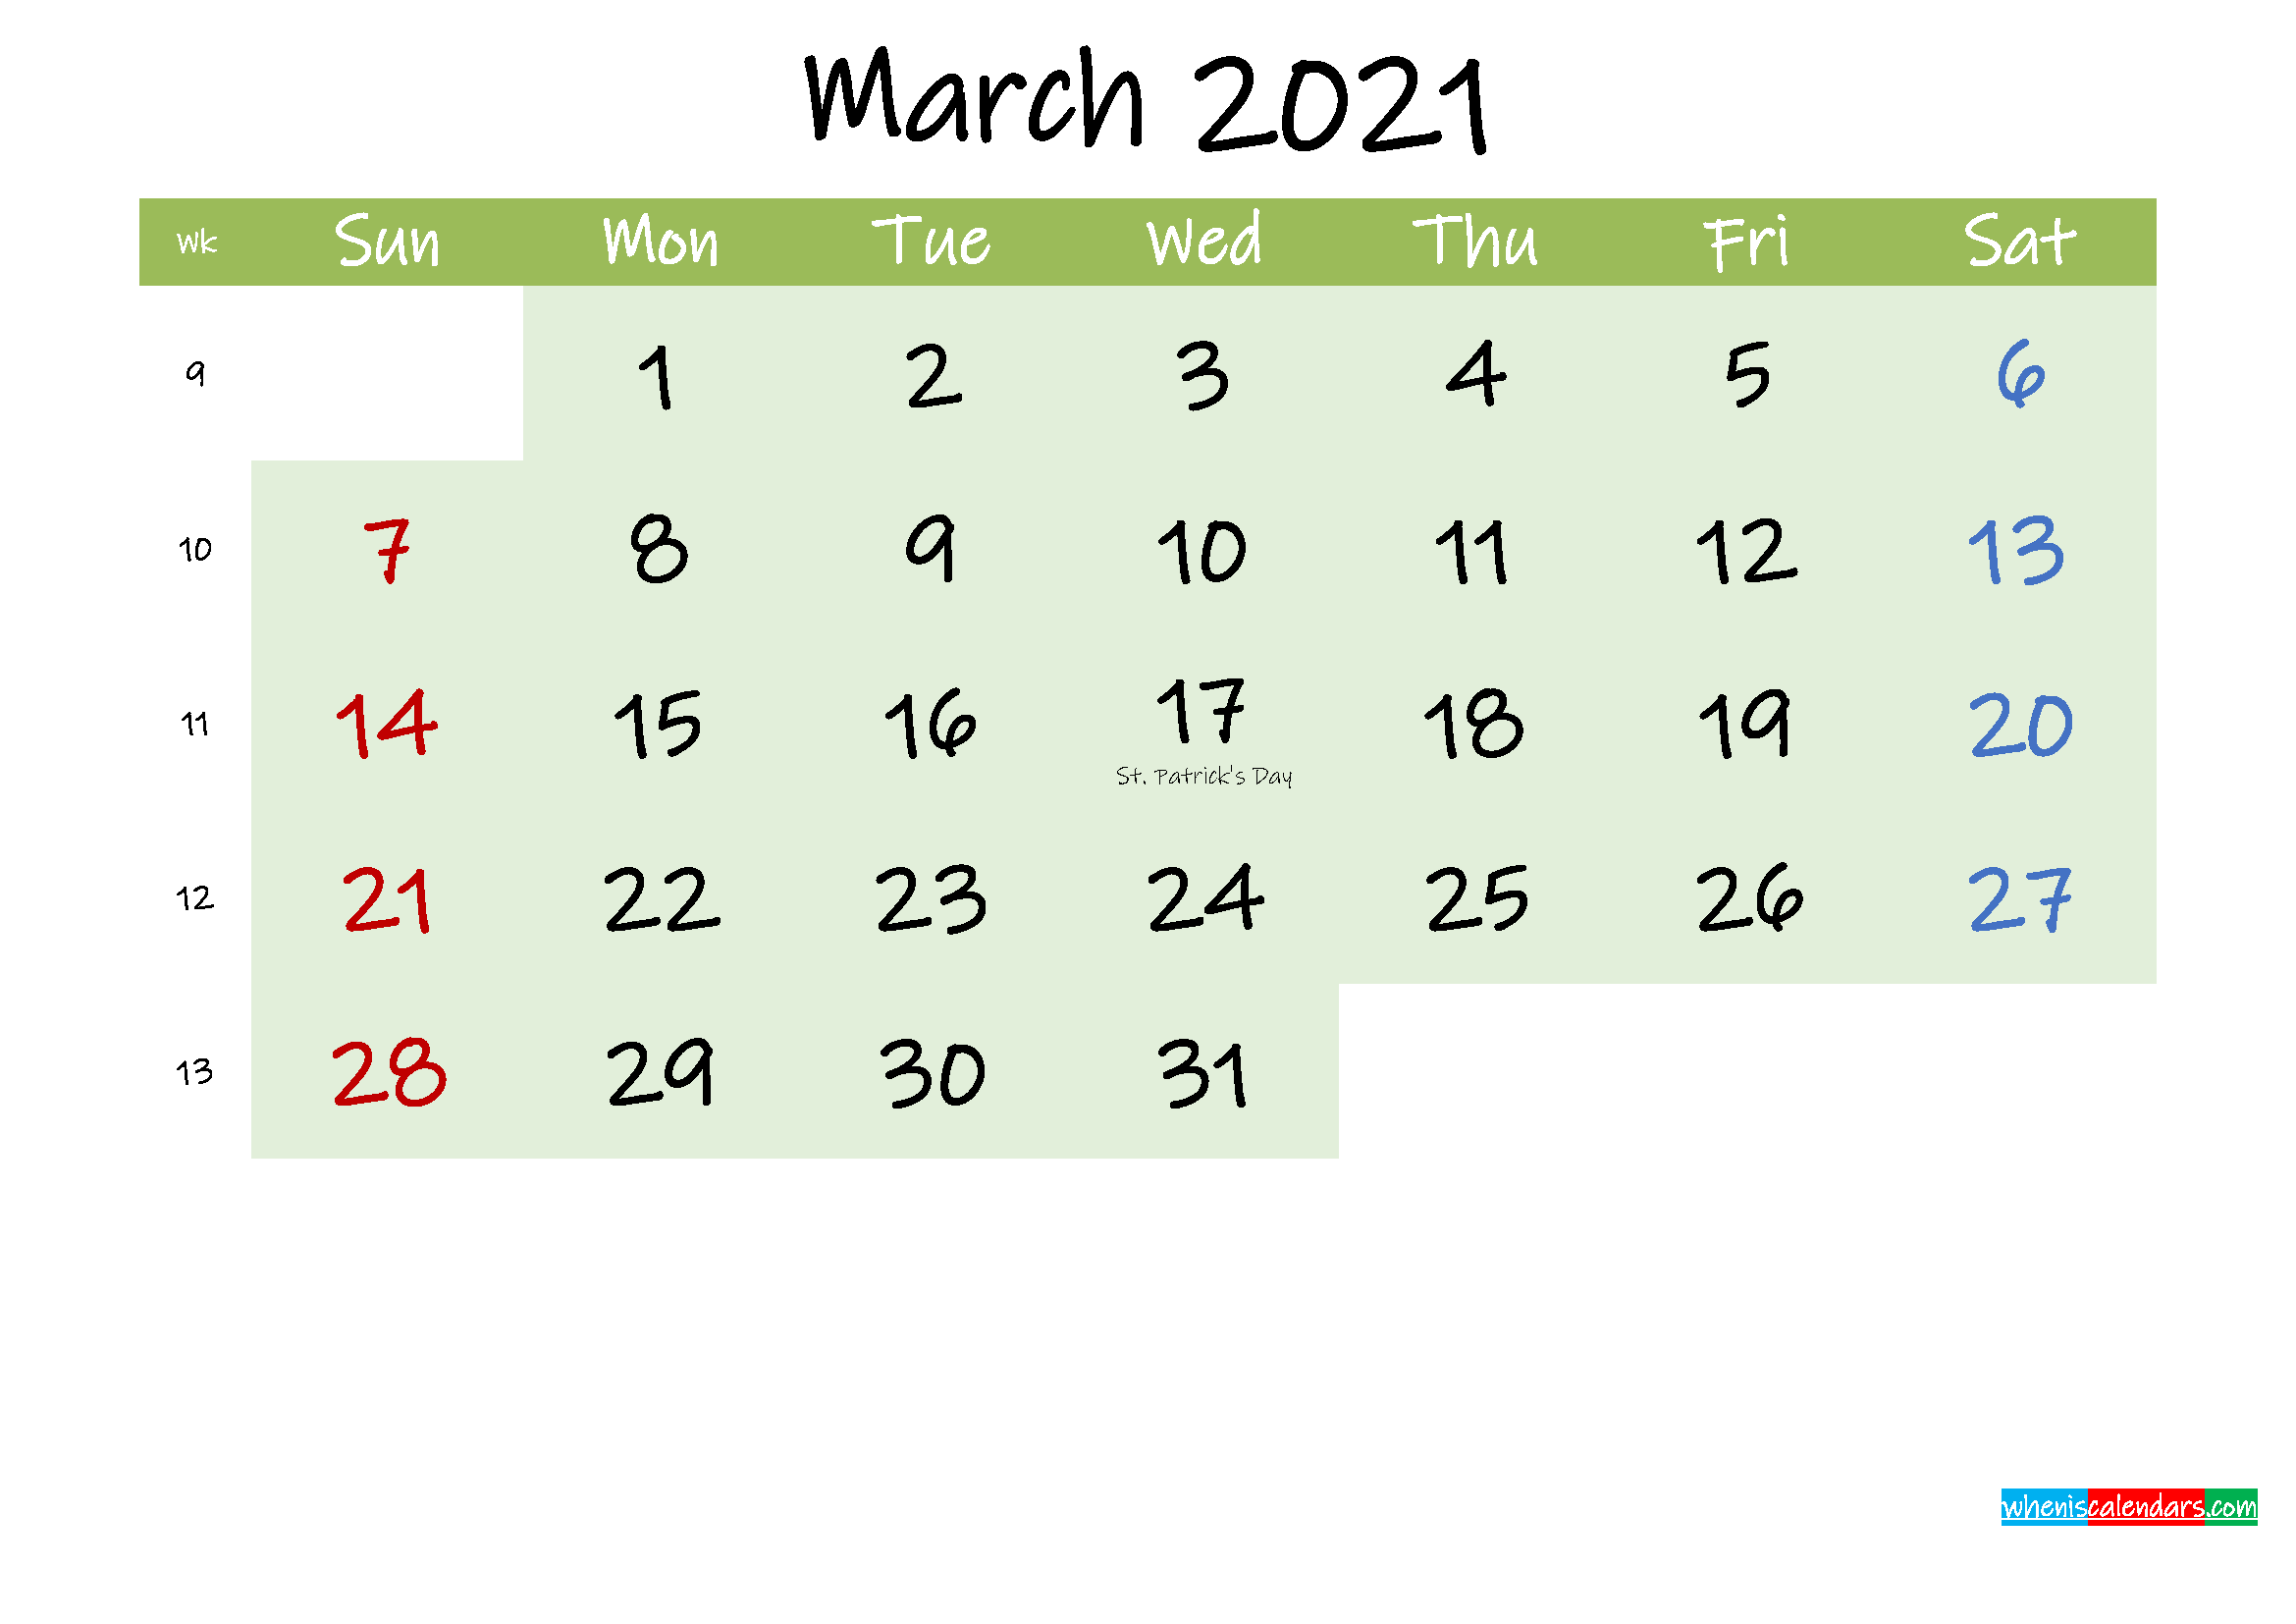 March 2021 Calendar with Holidays Printable